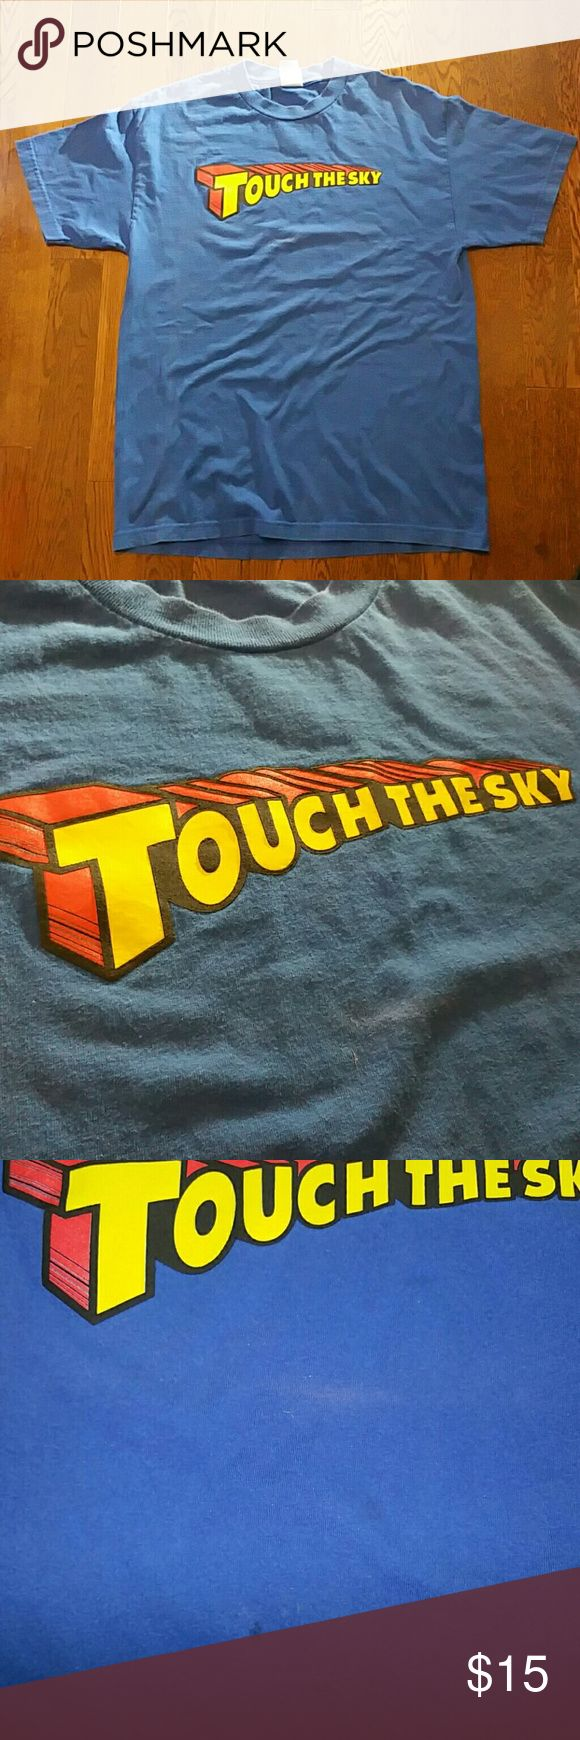 Size Large Kanye West Bear Touch the Sky T Shirt Shirt has been worn. Flaw shown in the 3rd picture. This shirt is inspired by Kanye West Album, Late Registration and from the song off the album, Touch the Sky.  air Jordan LeBron James Kobe black mamba Bryant Kyrie Irving pg1 pg2 James harden dame Damian Lillard Yeezy ultraboost ultra boost nmd guess Tommy Hilfiger Gucci Louis Vuitton supreme bape 1 2 black cement 3 4 5 6 7 8 9 adidas 10 11 12 13 Nike human race 14 15 16 17 18 19 20 21 23…